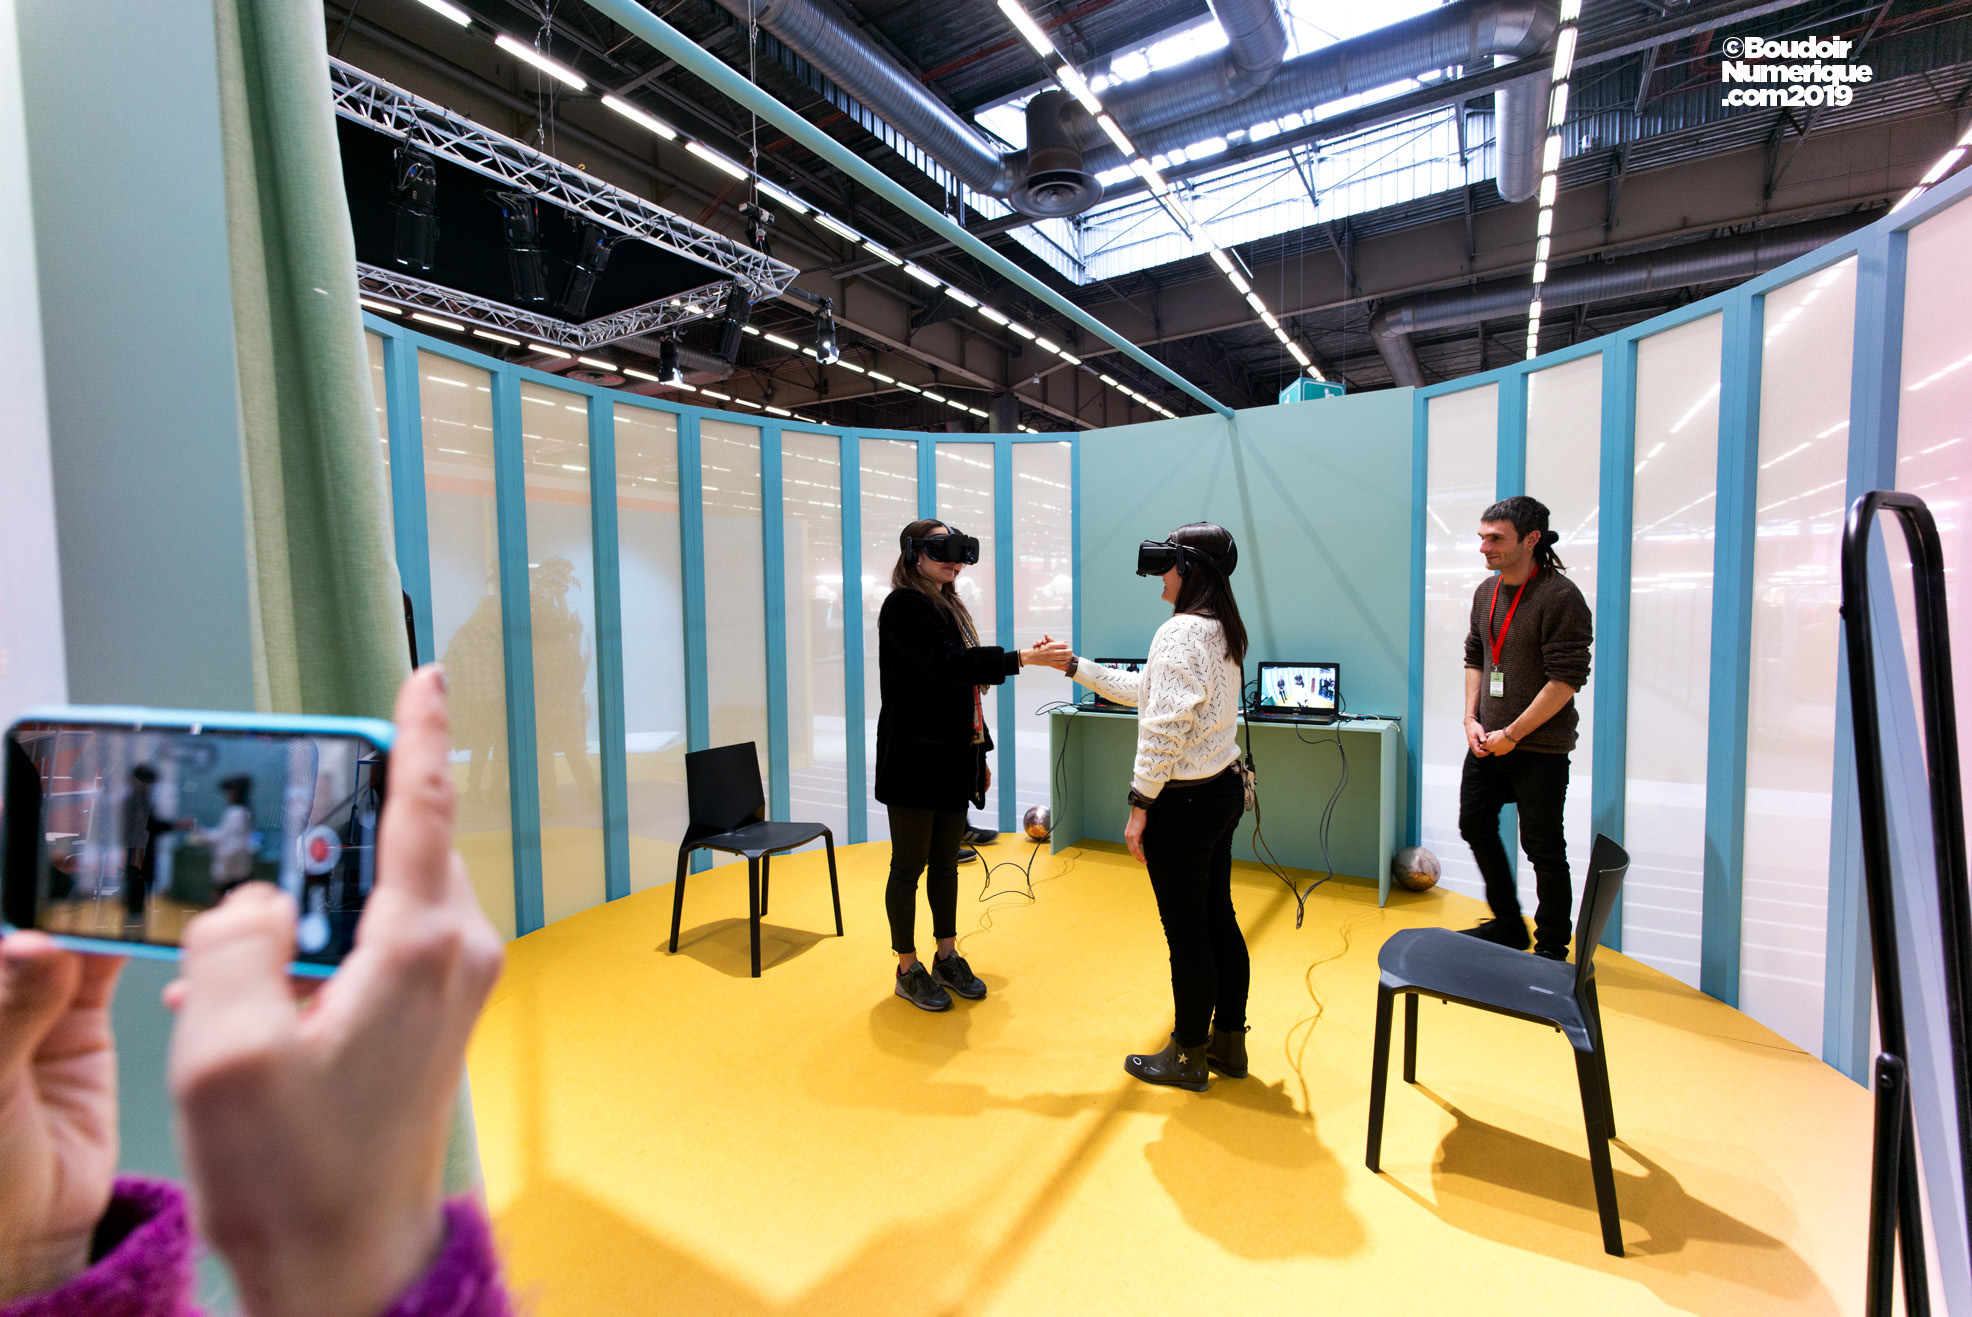 The virtual reality installation of BeAnotherLab collective allowed two participants to swap their vision.